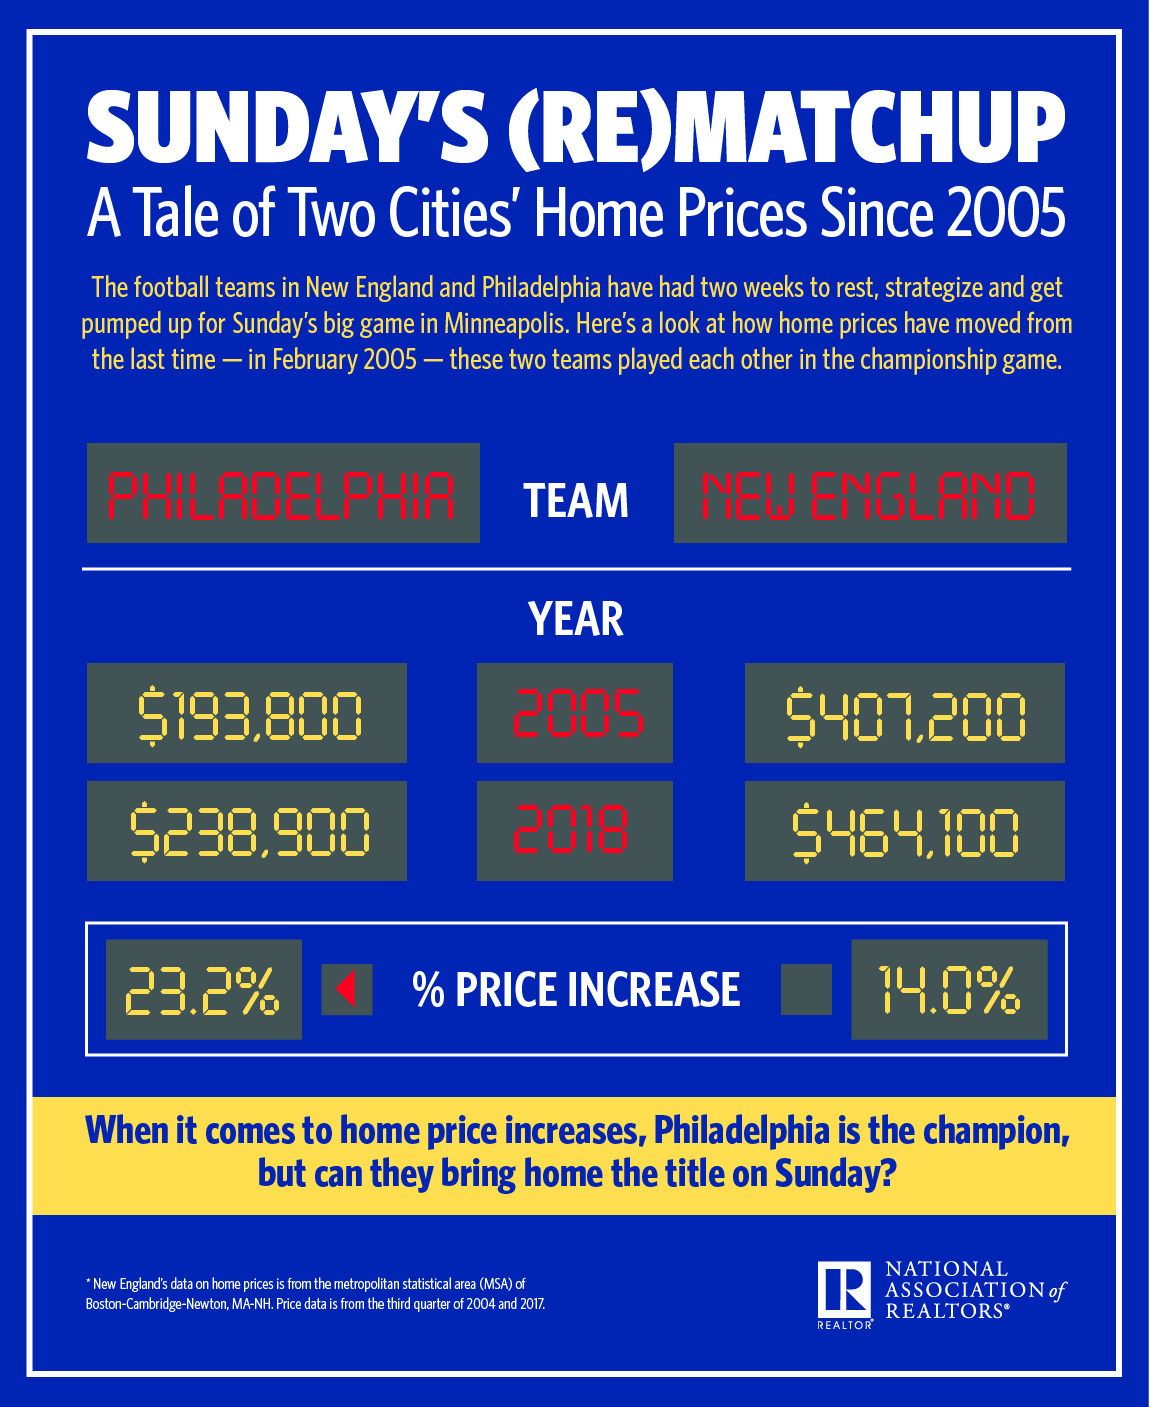 Infographic: Sunday's (Re)Matchup: A Tale of Two Cities' Home Prices Since 2005